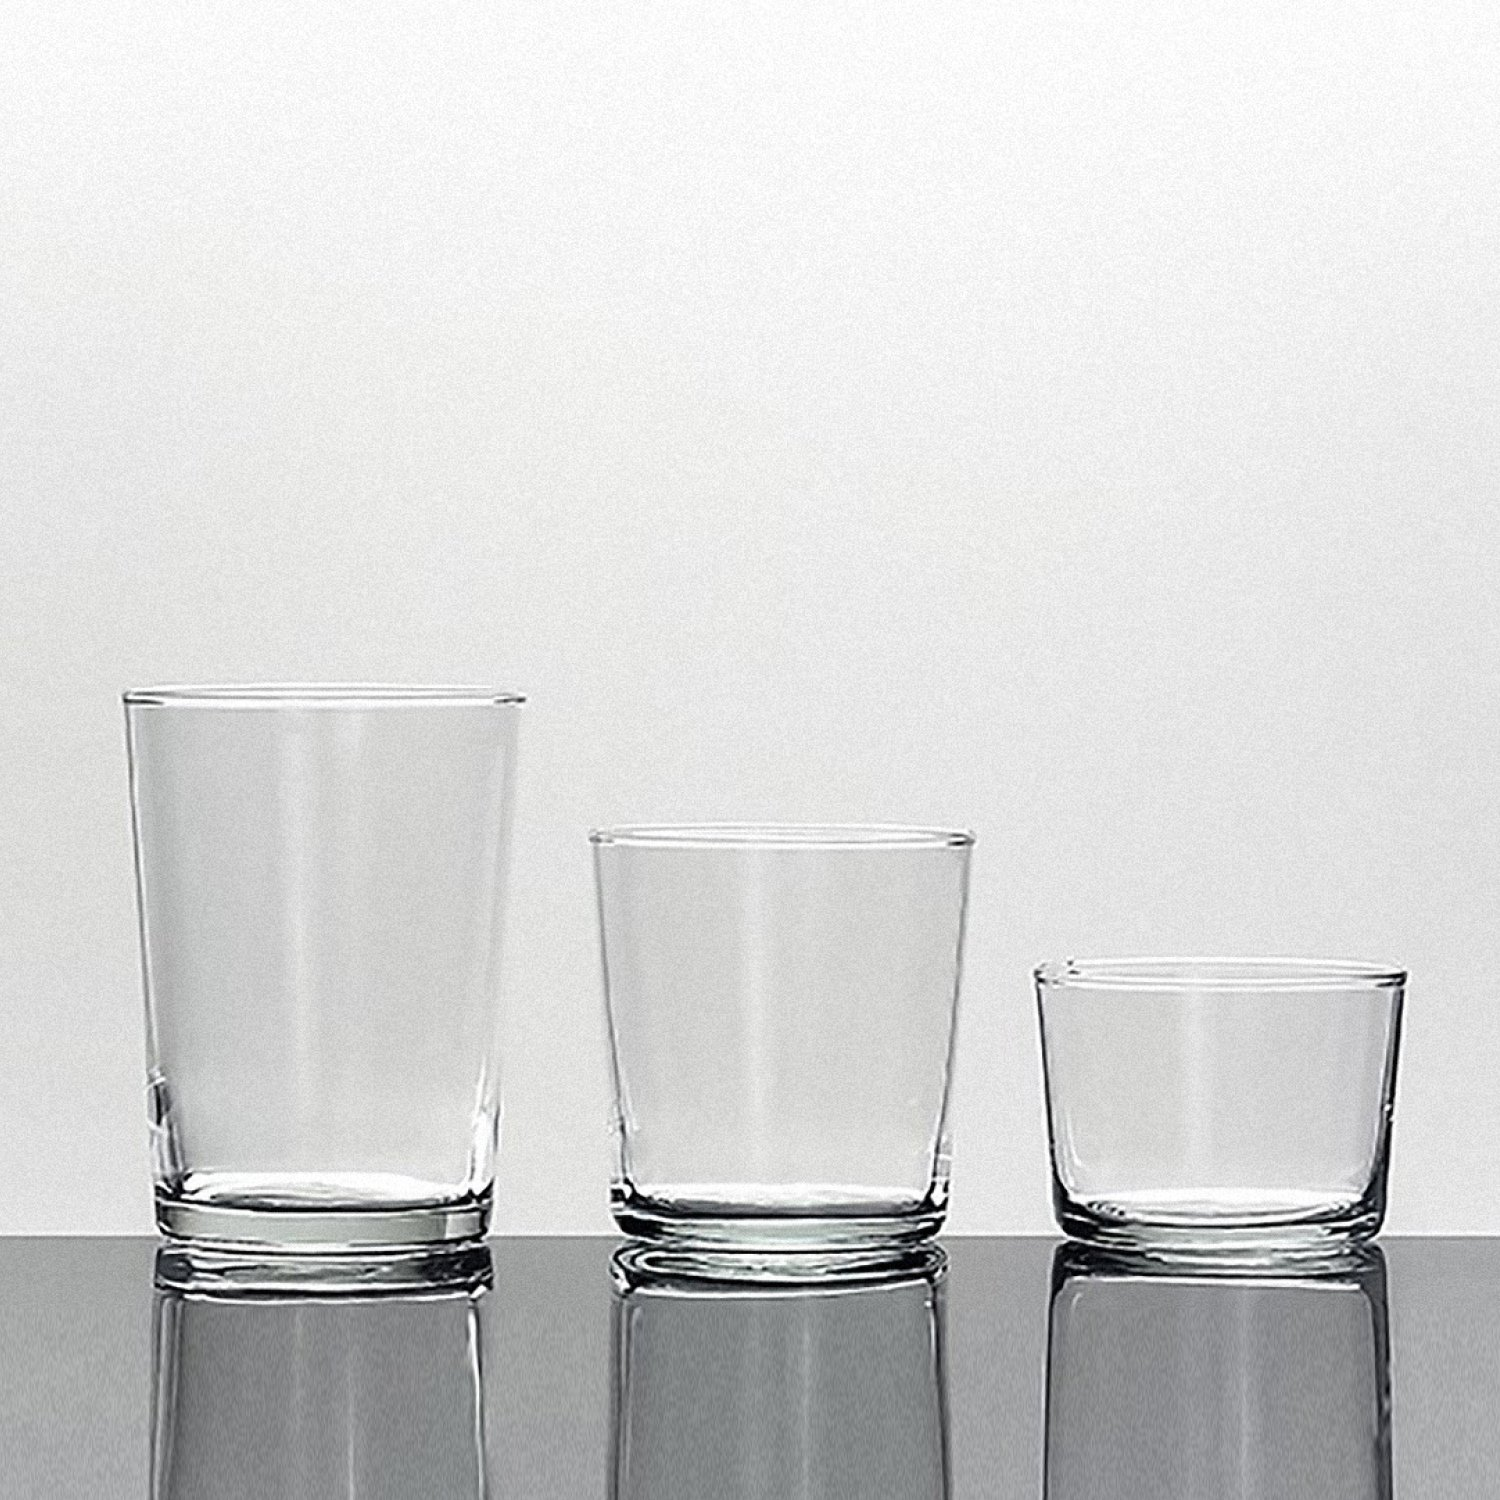 Bormioli Rocco Bodega Collection Glassware – Set Of 12 Maxi 17 Ounce Drinking Glasses For Water, Beverages & Cocktails – 17oz Clear Tempered Glass Tumblers by Bormioli Rocco (Image #2)